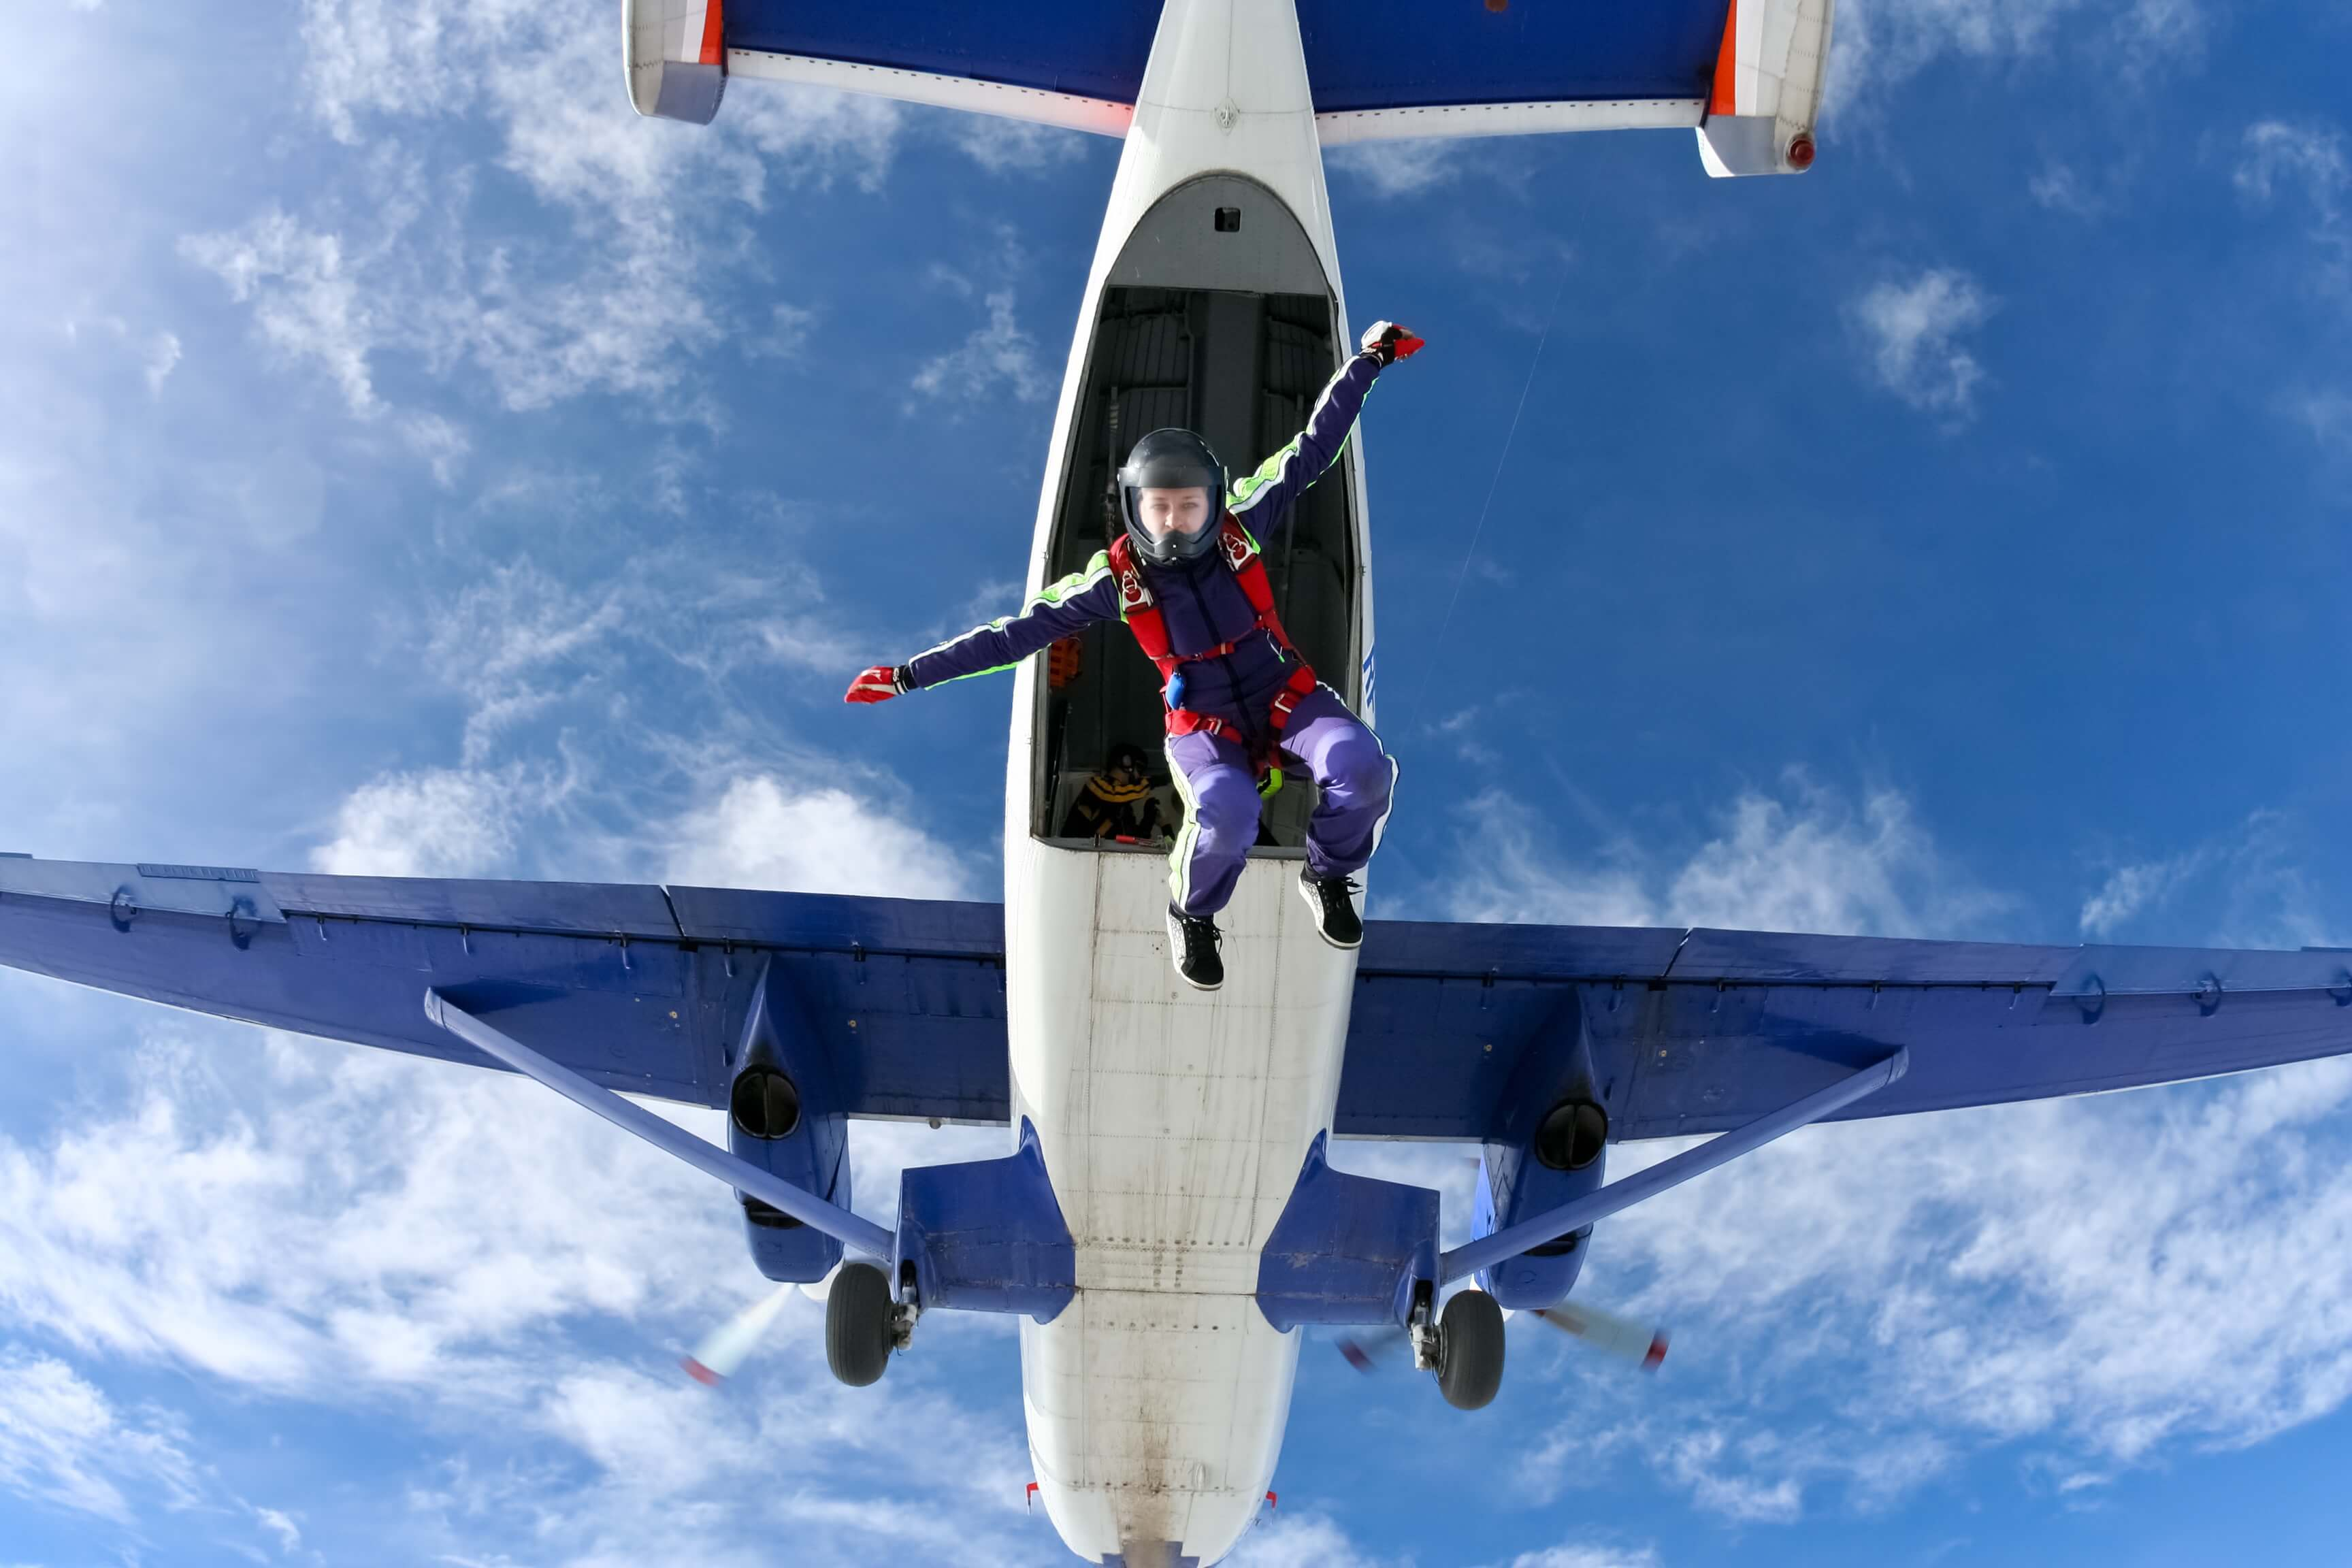 A skydiver jumps from an airplane.